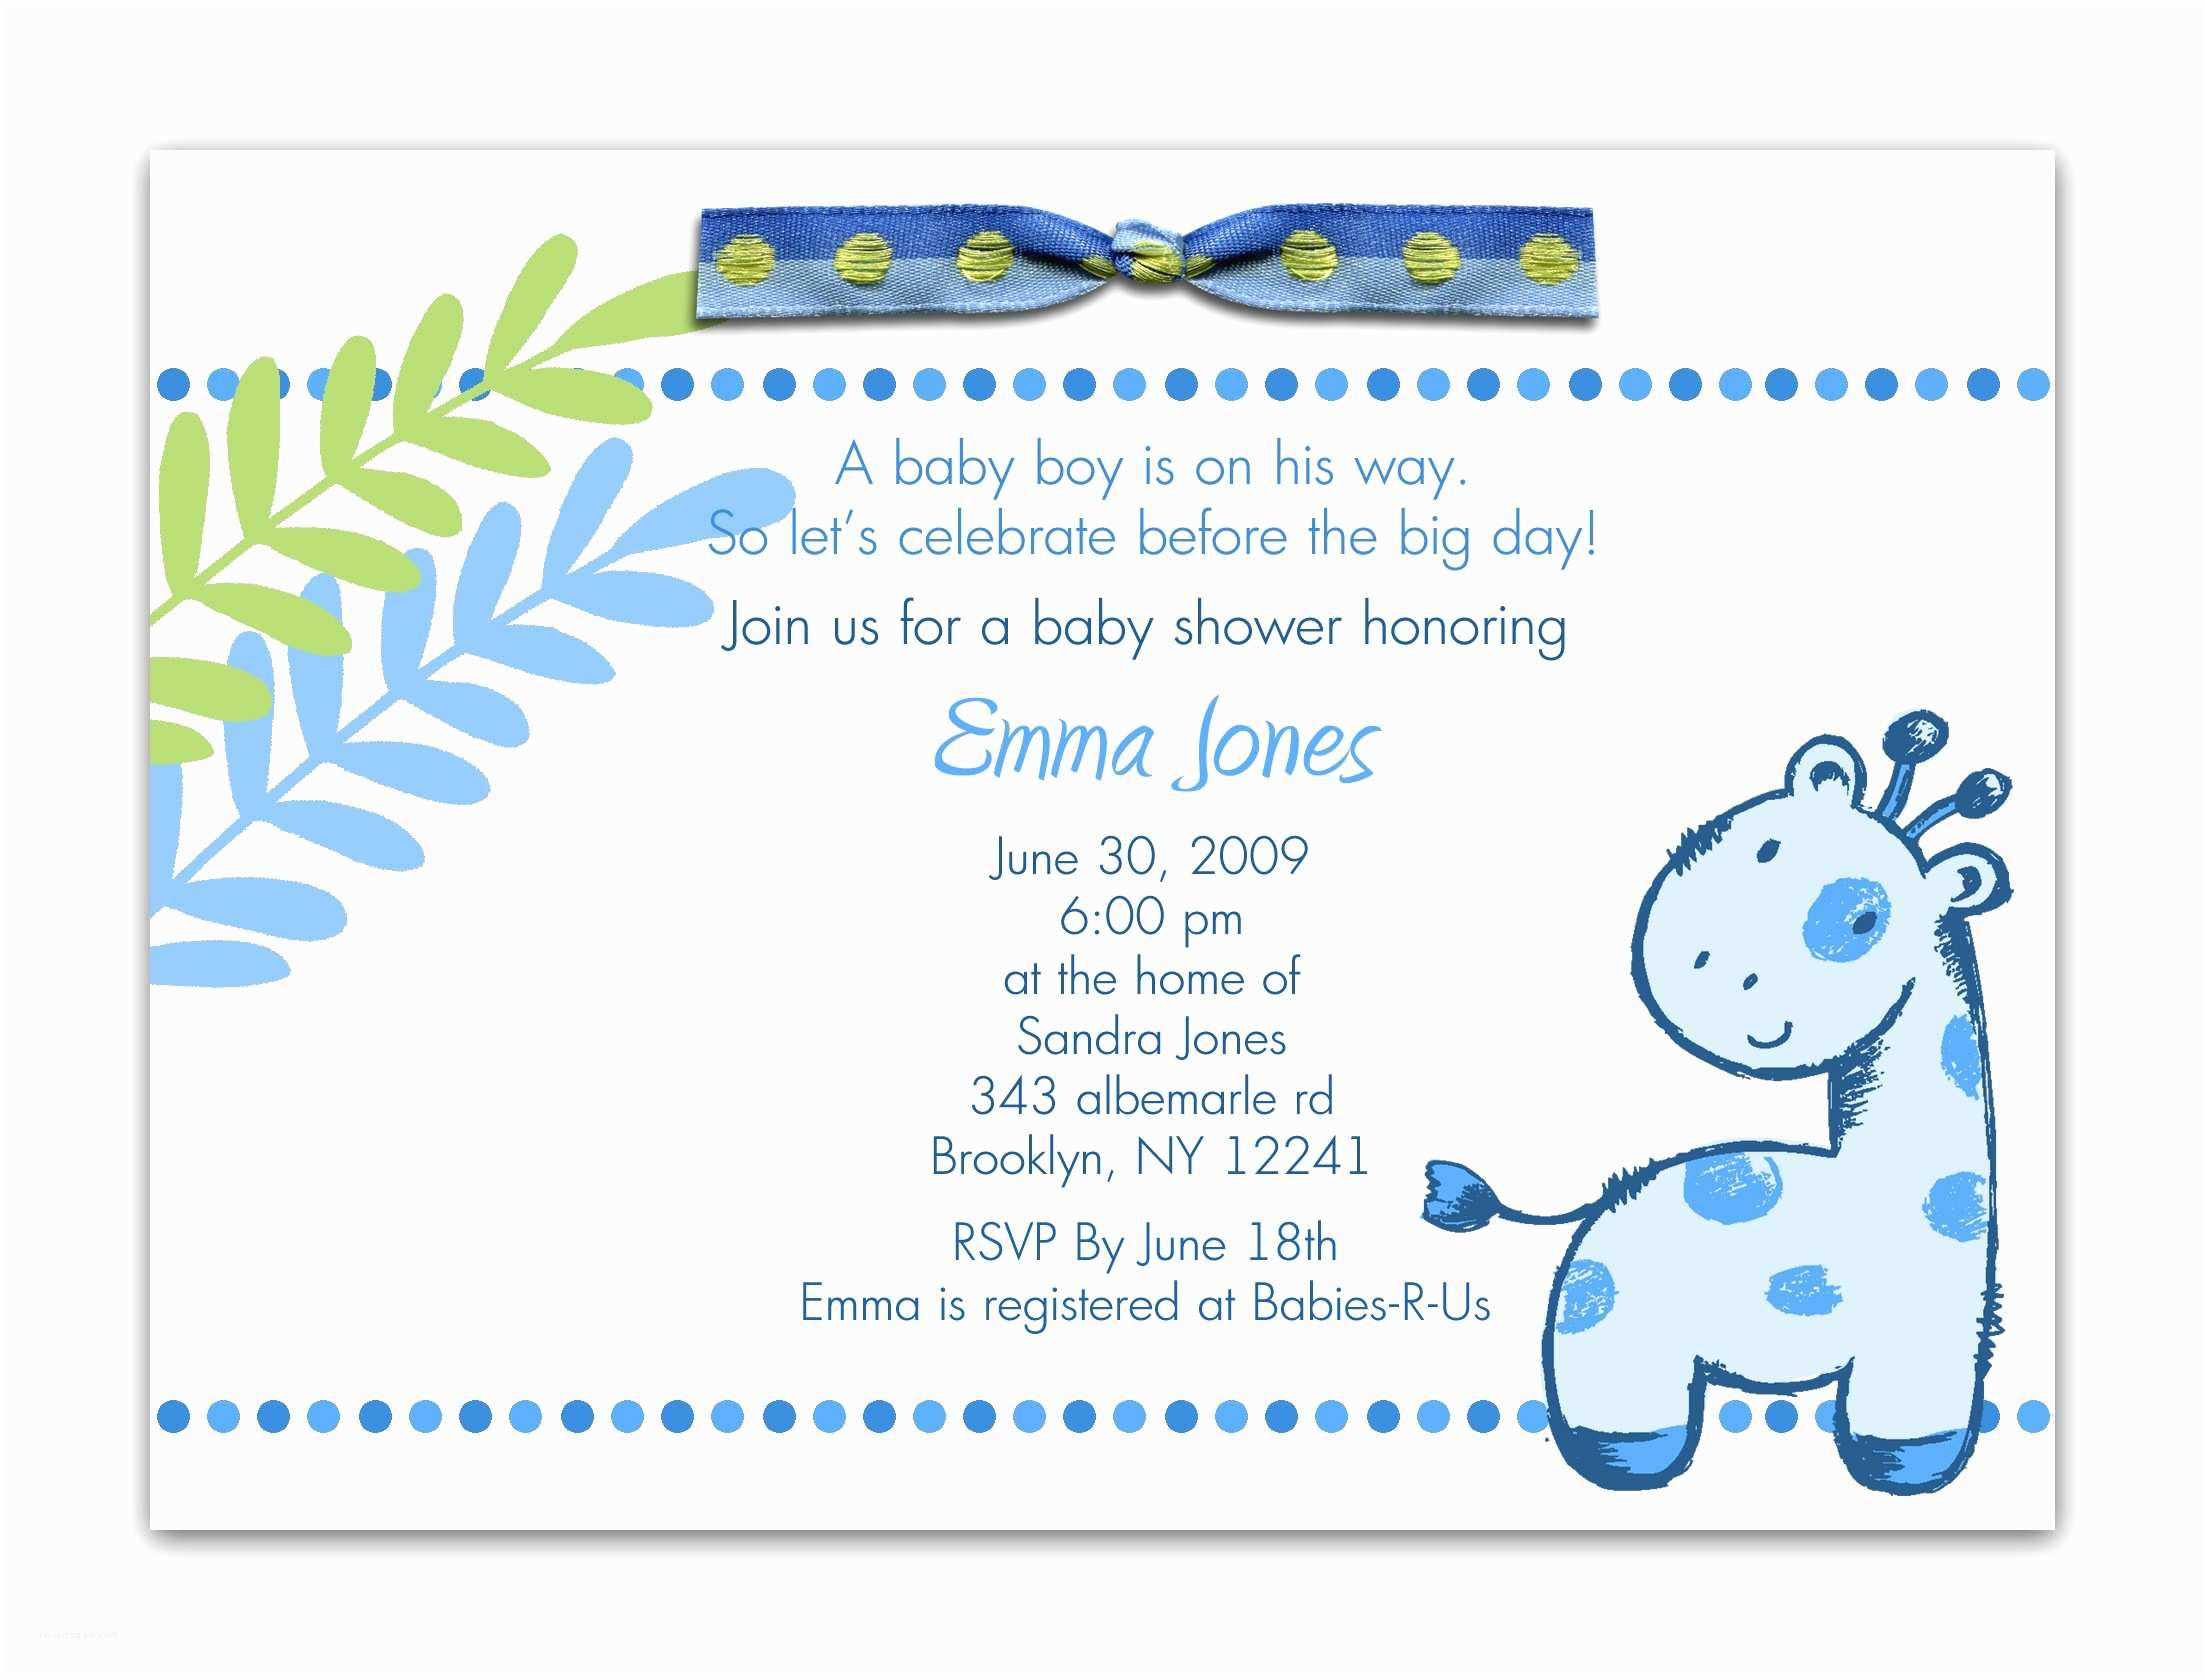 Baby Shower Invitation Message Baby Shower Invitation Wording for A Boy